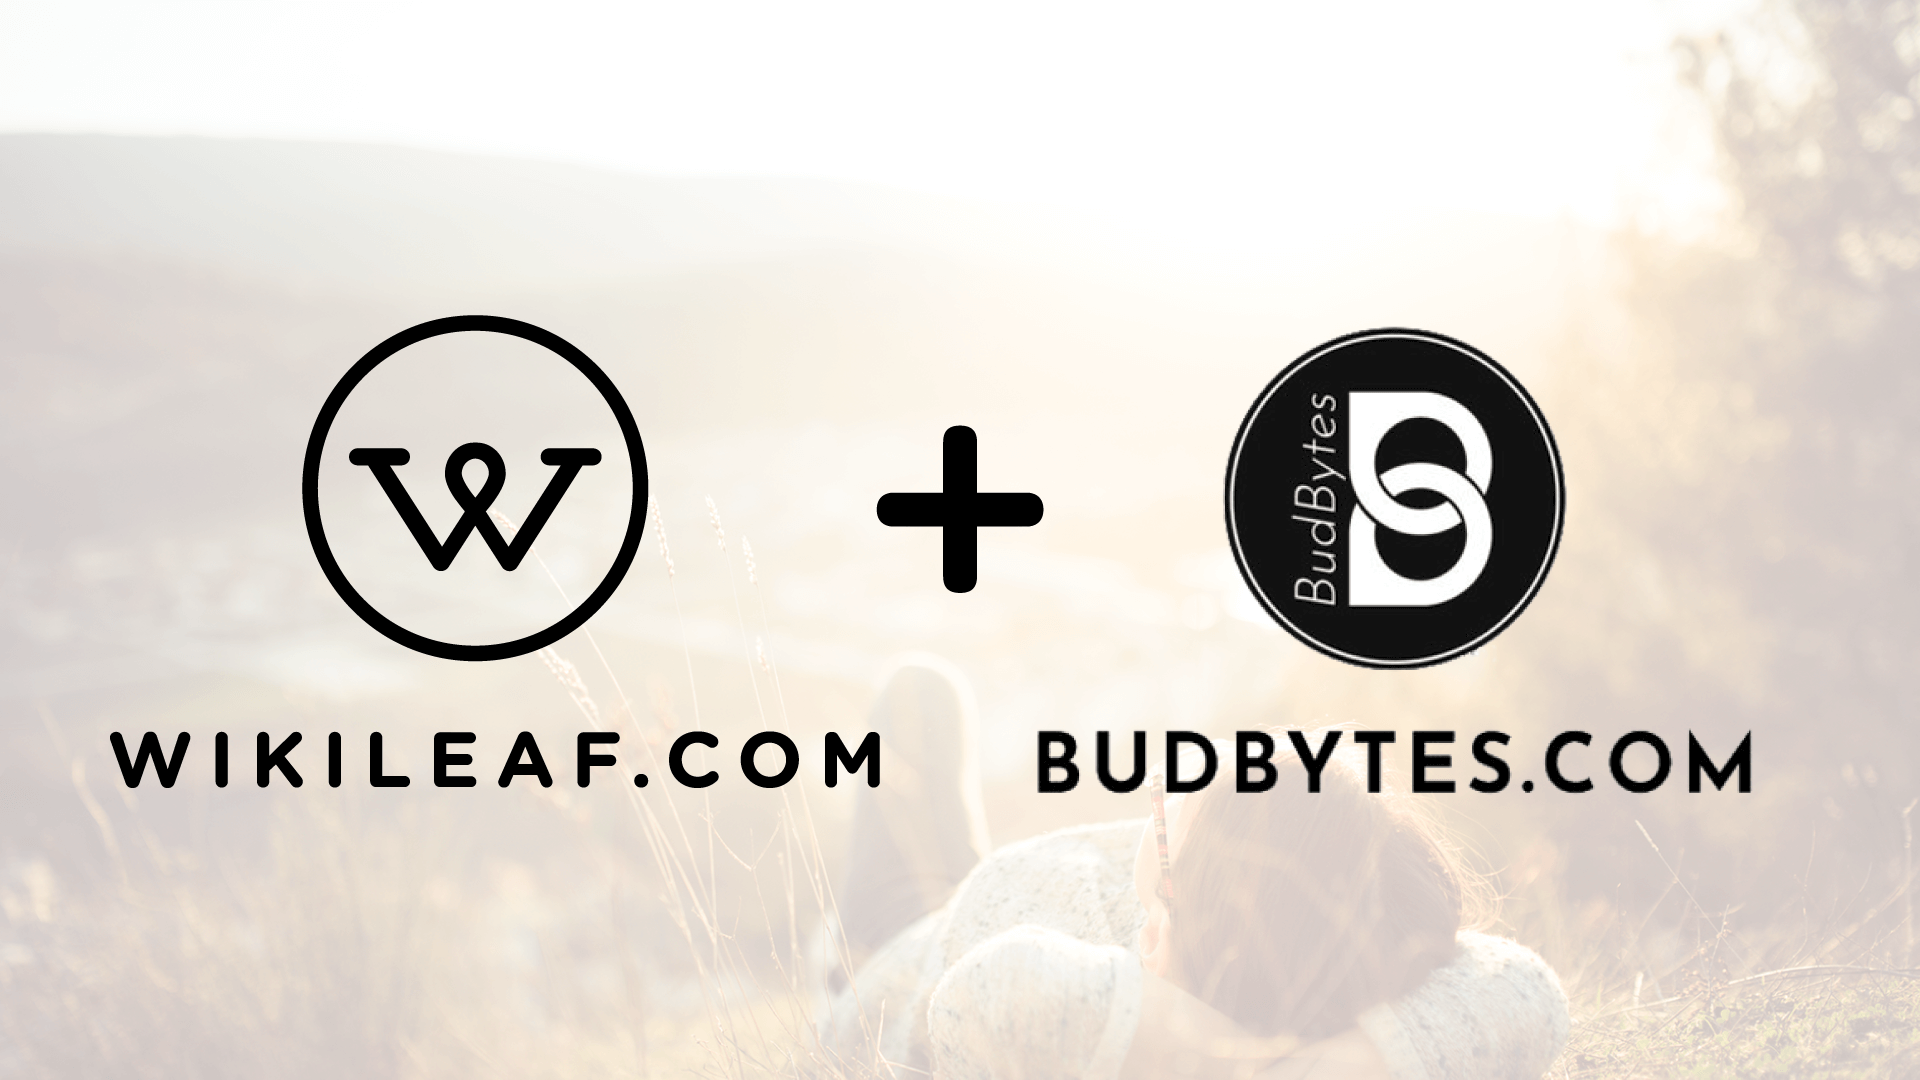 BudBytes integrates with Wikileaf